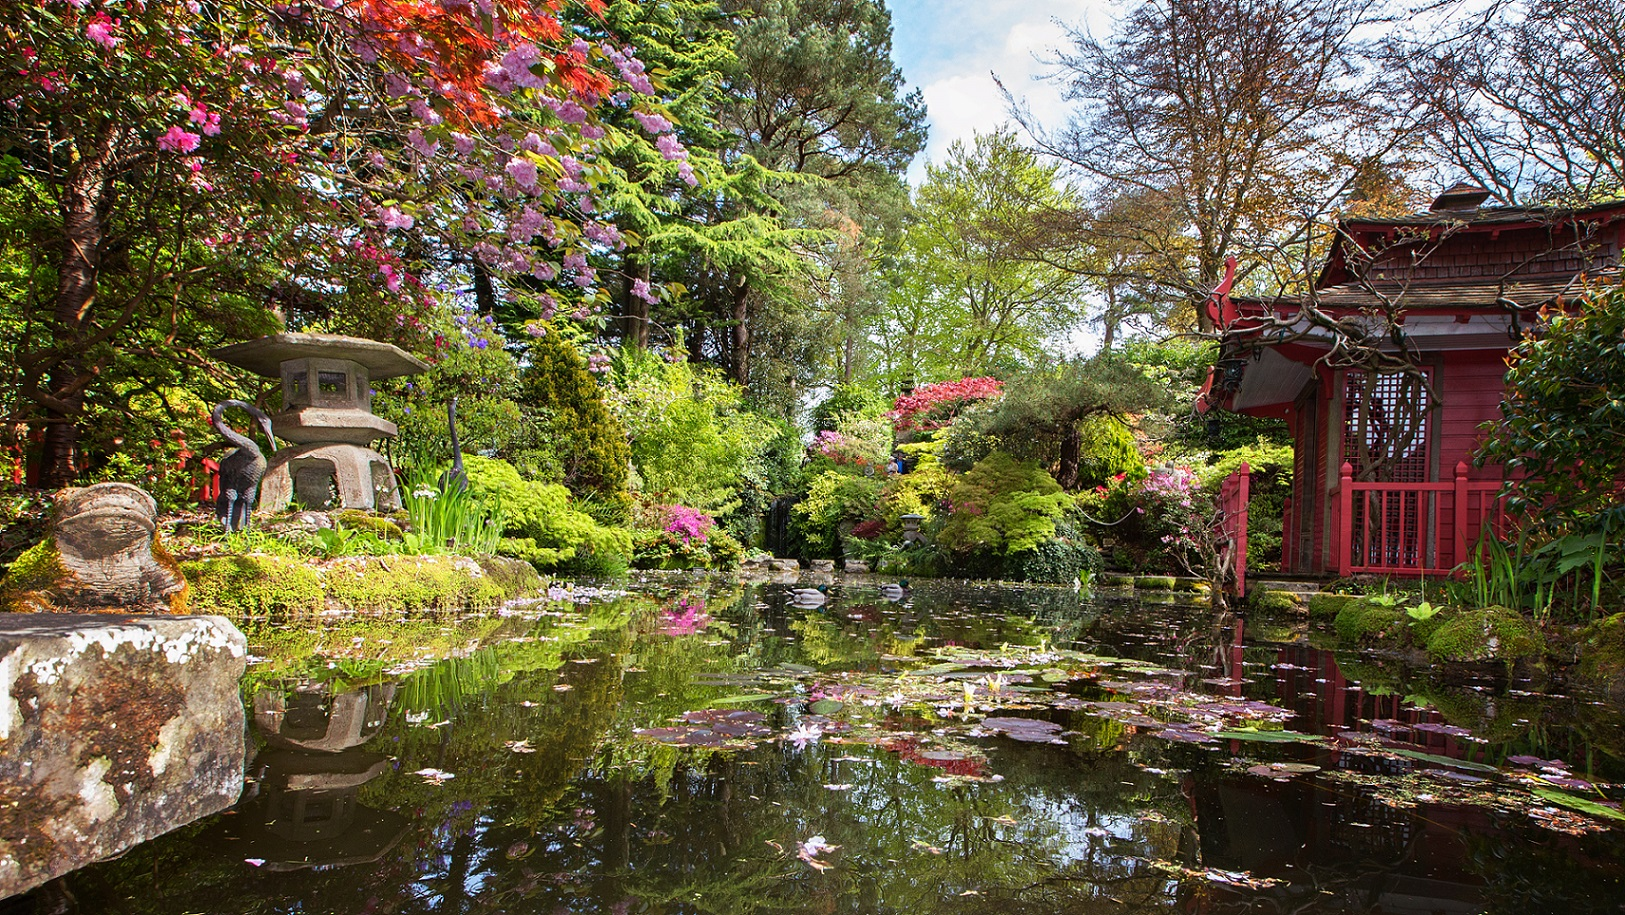 Compton acres in dorset celebrates japanese horticulture for A japanese garden